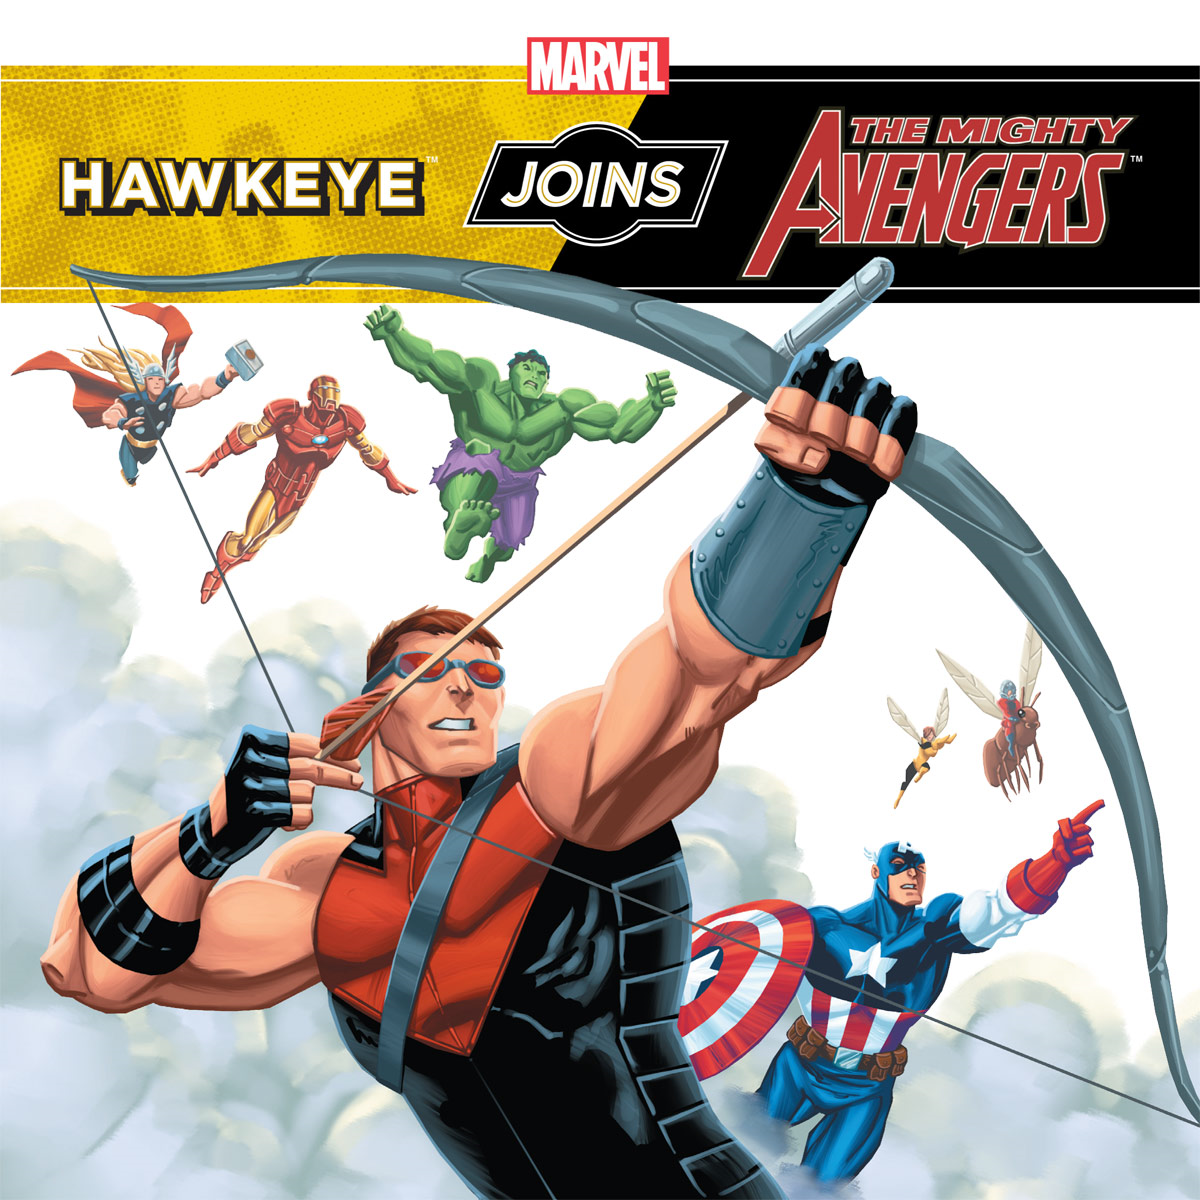 Hawkeye Joins the Mighty Avengers By: Disney Book Group